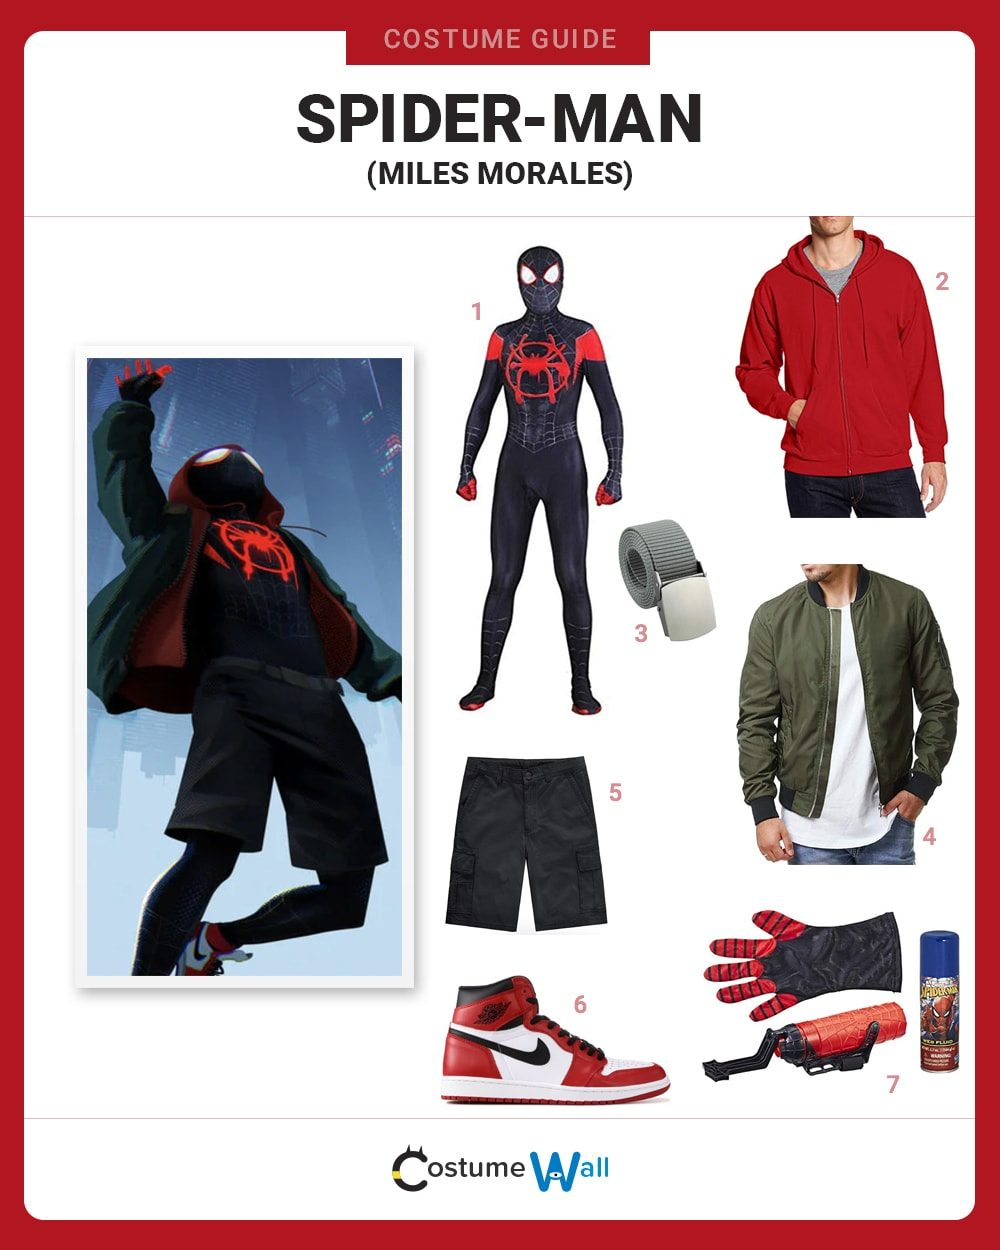 Spider-Man (Miles Morales) Costume Guide